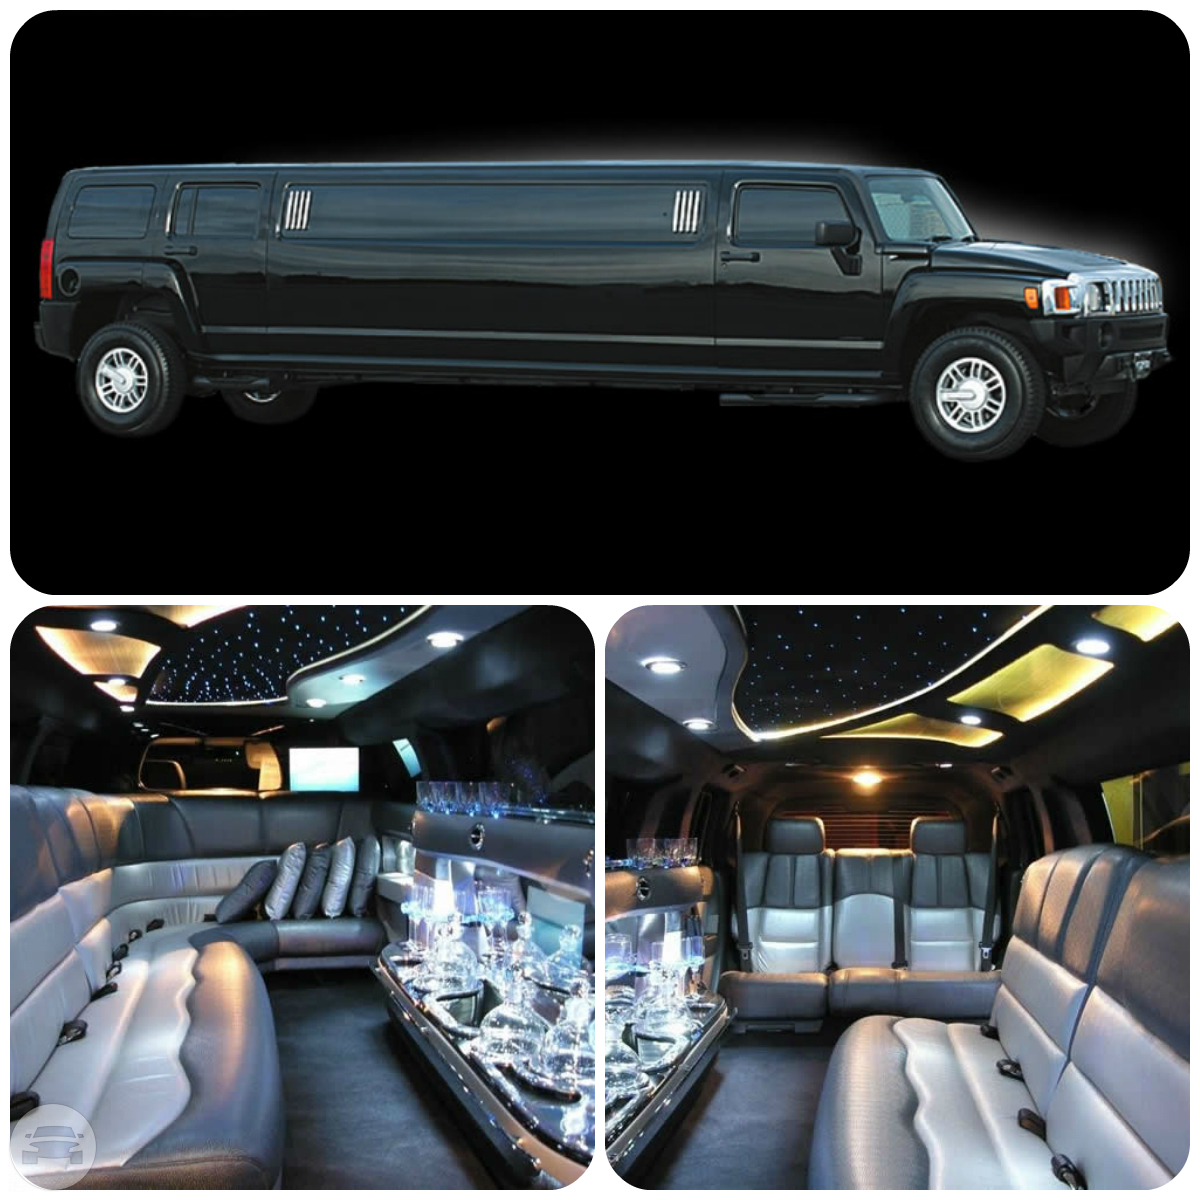 Black Hummer H3 Limousine Limo  / London, UK   / Hourly £0.00